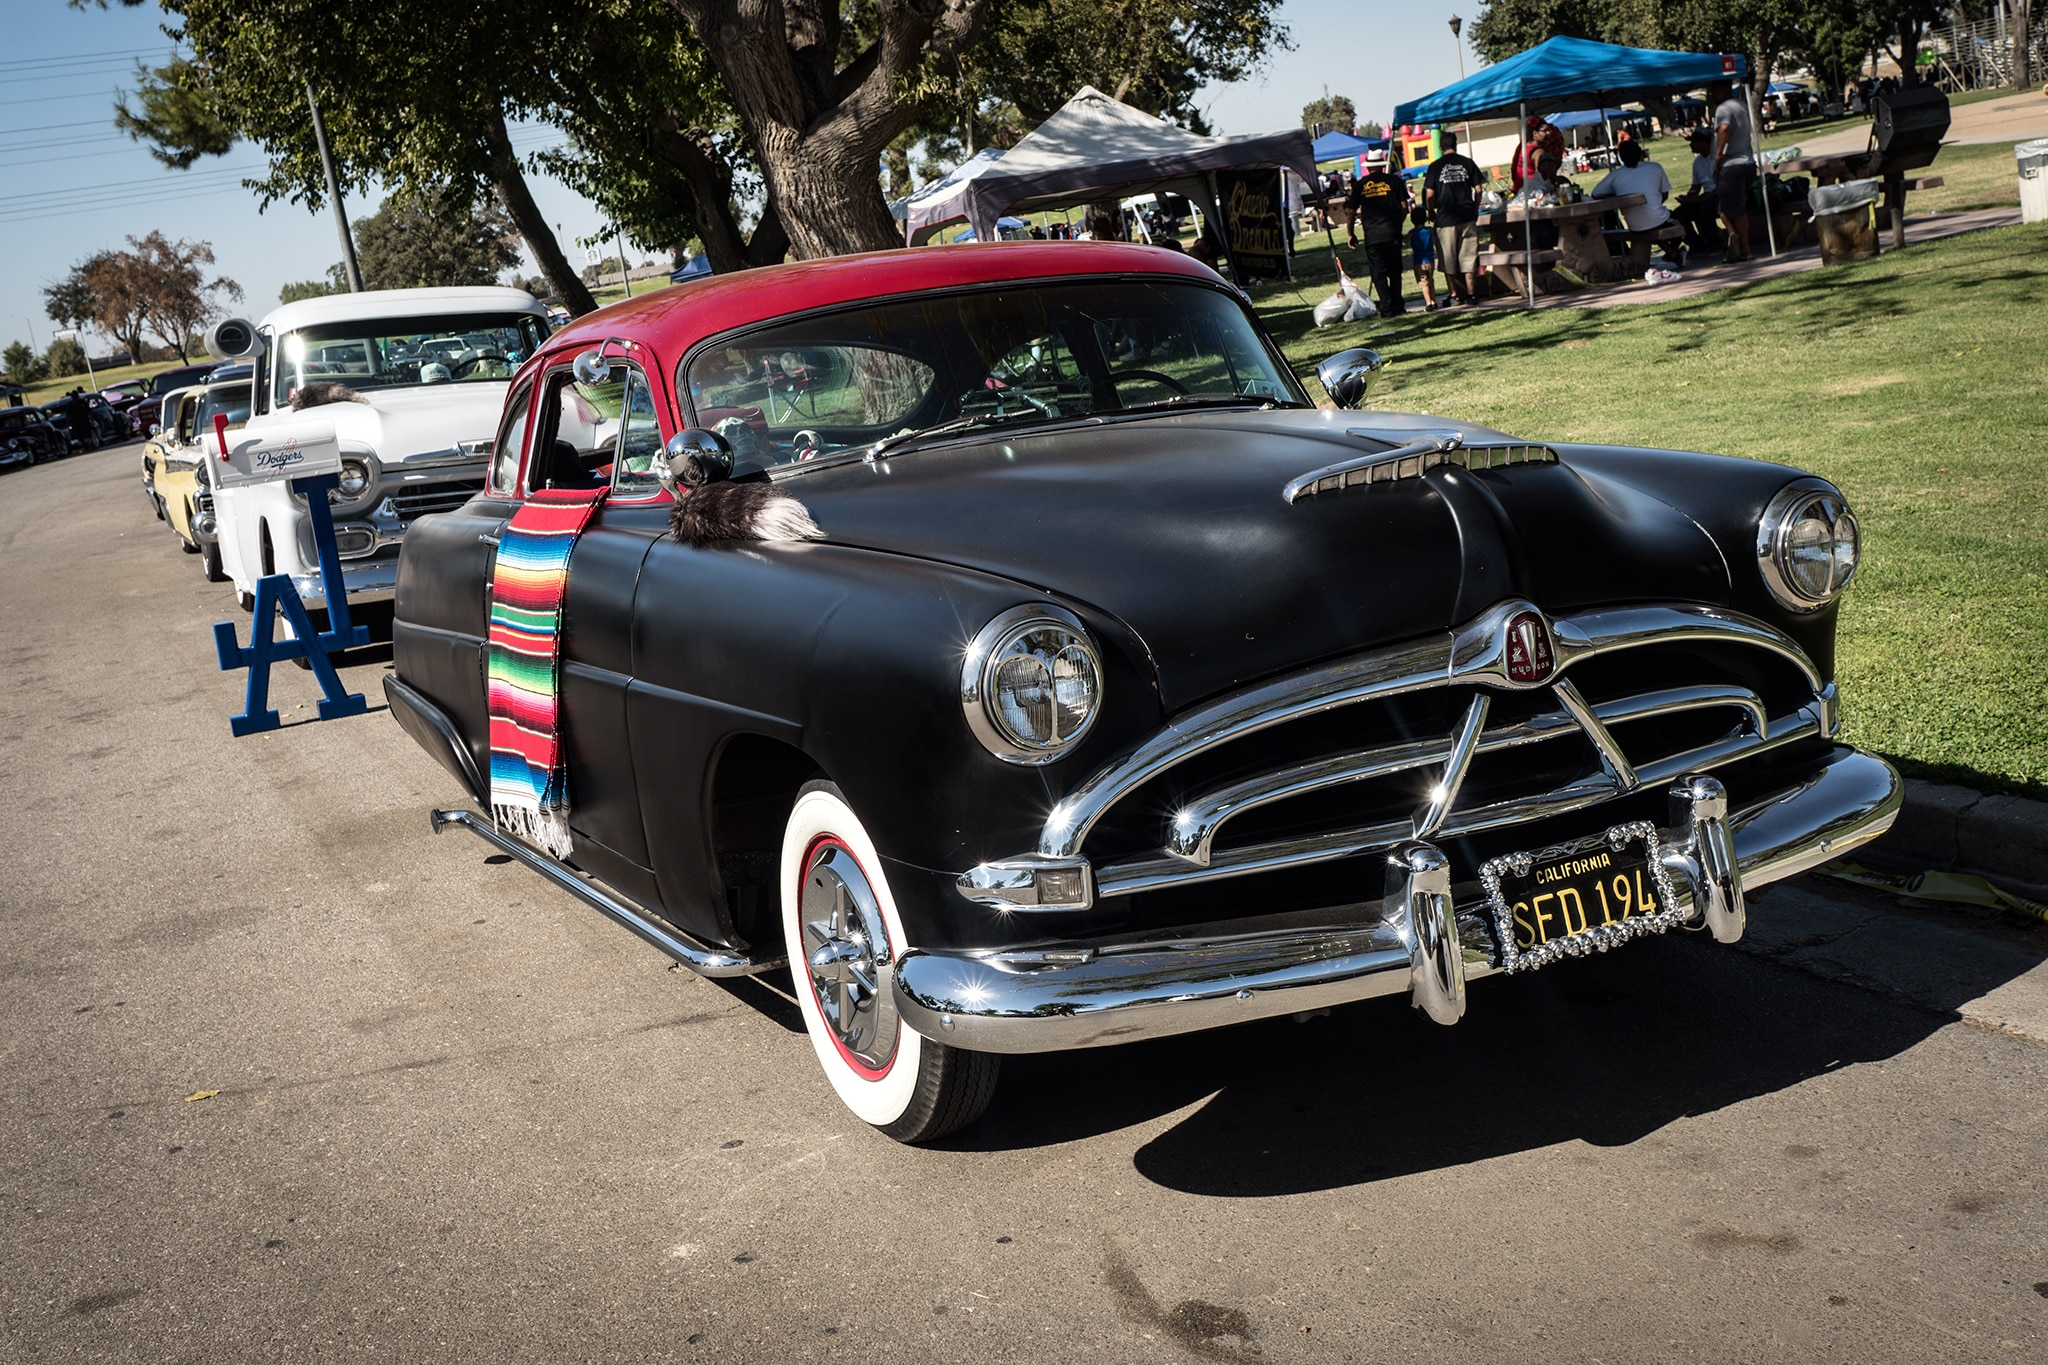 Th Anniversary Groupe Car Club Picnic And Car Show Gallery - Bakersfield car show